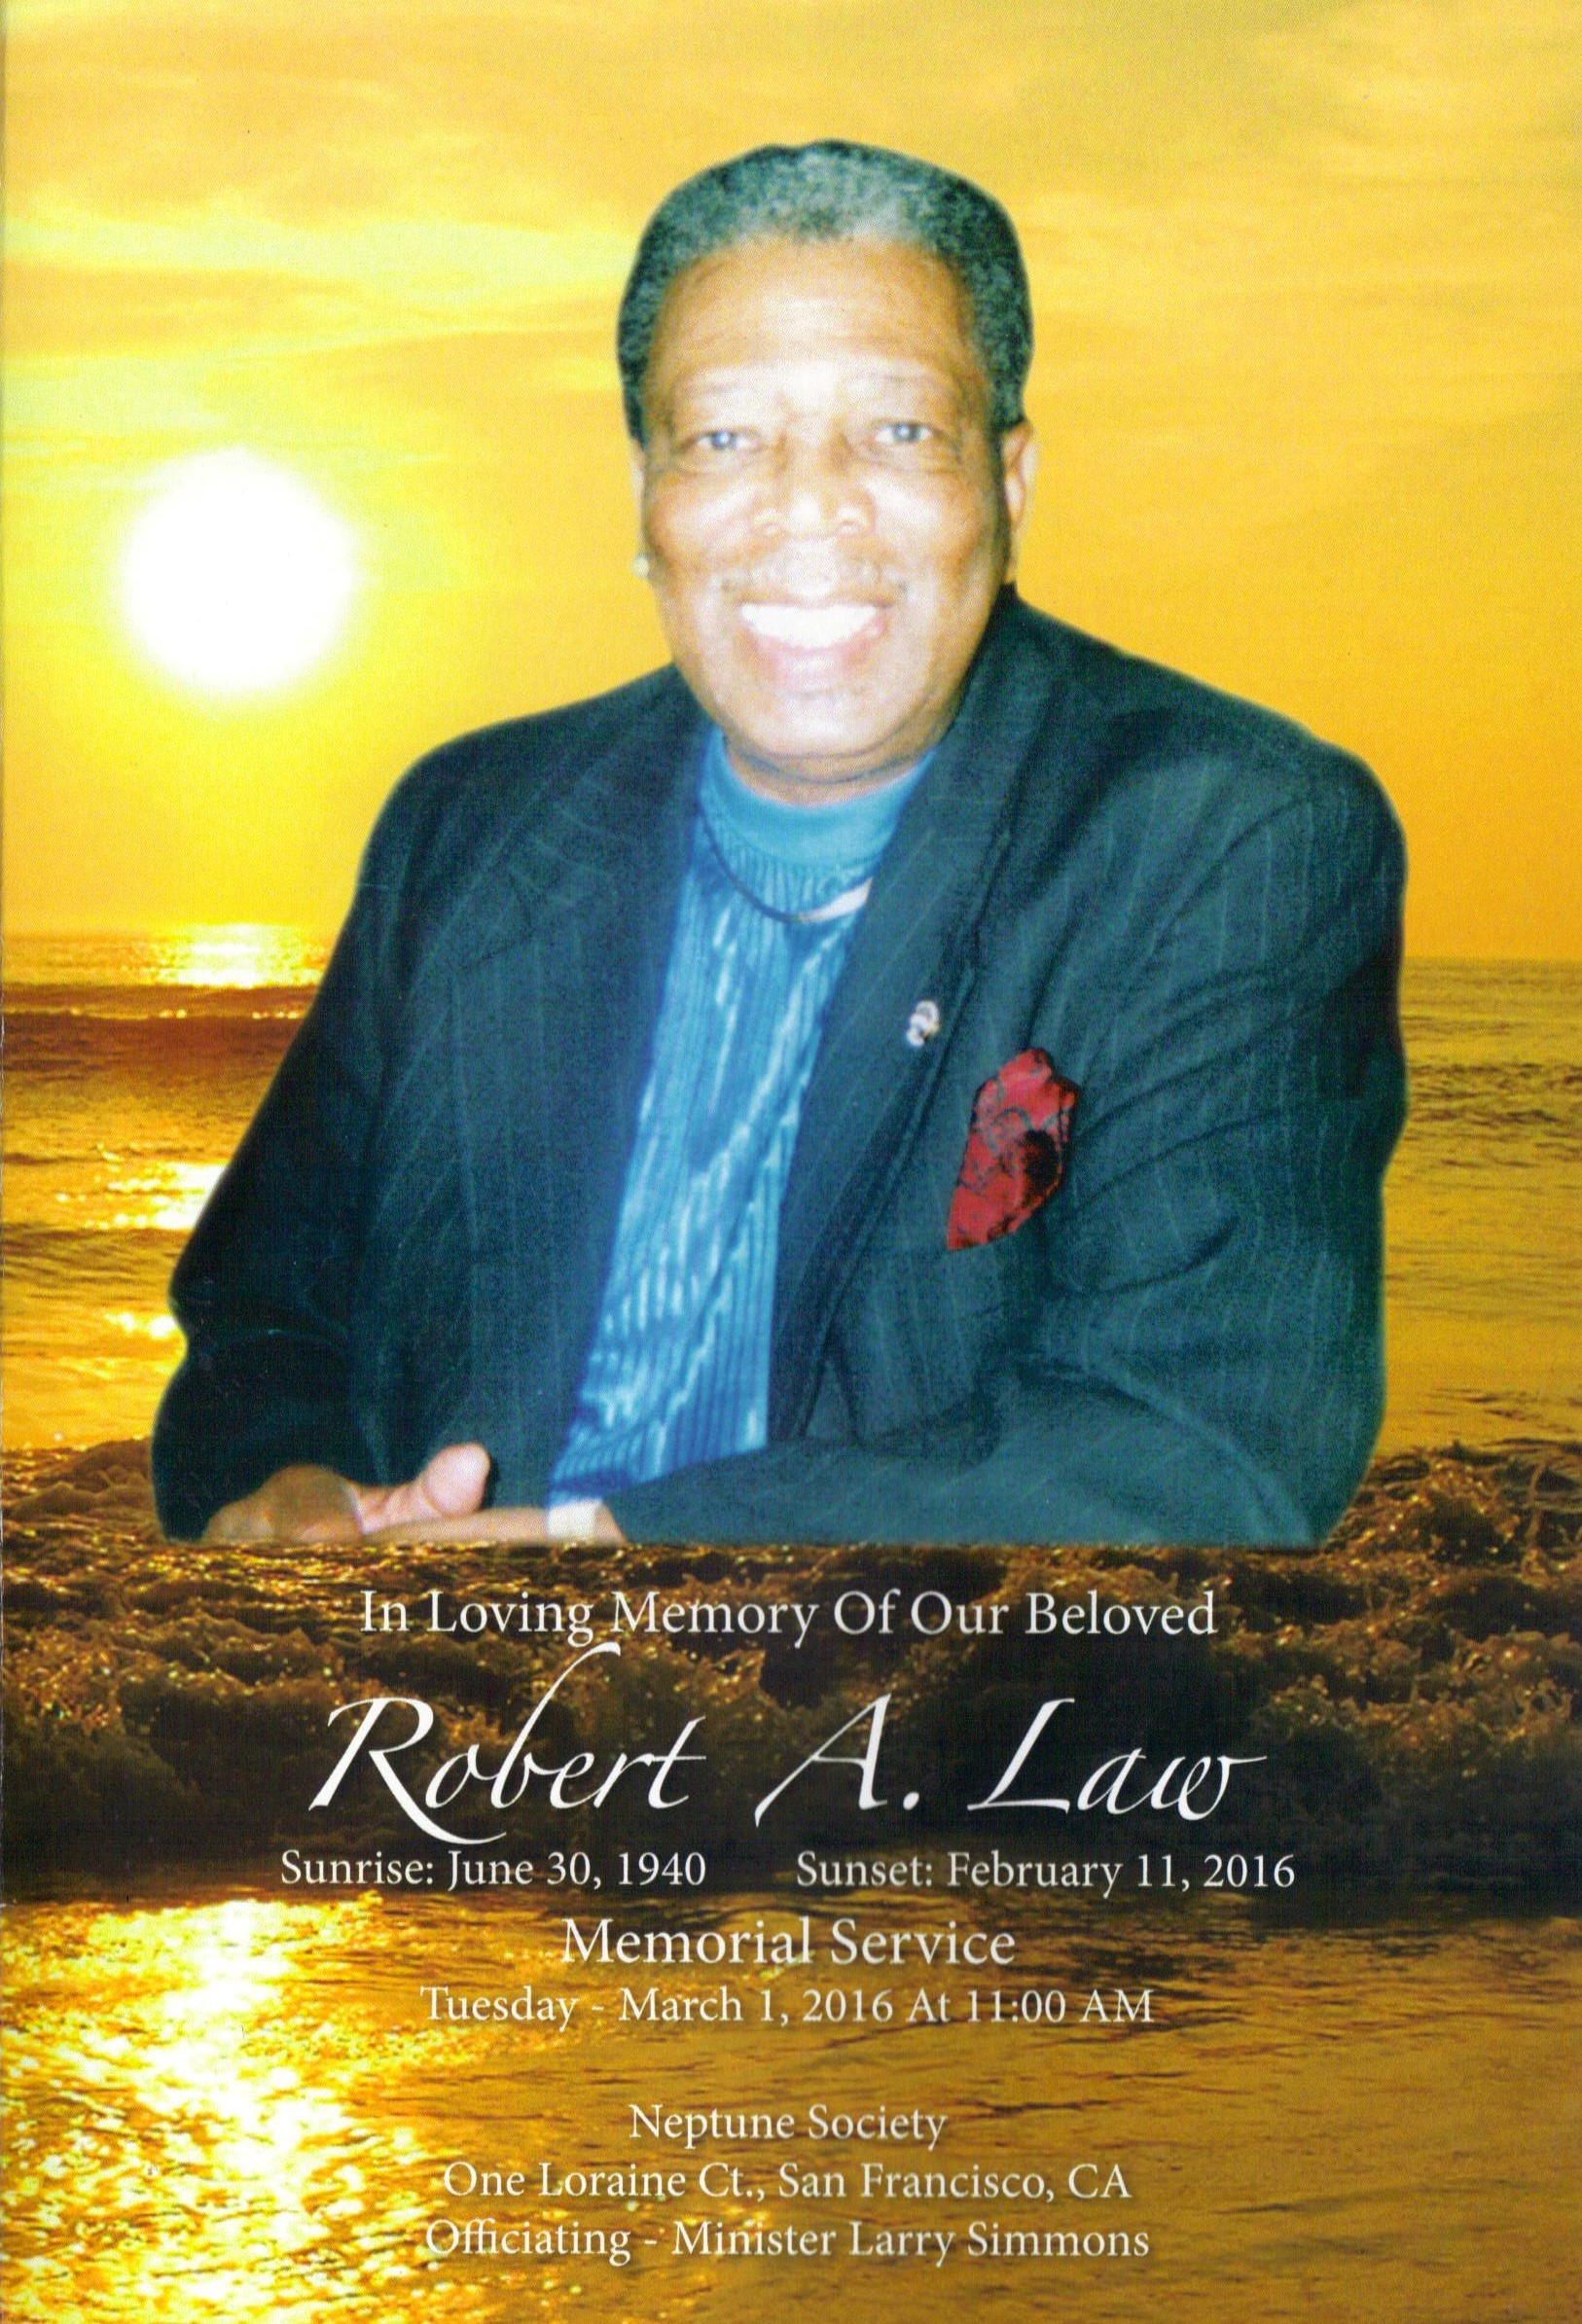 Robert Law picture.jpeg (2)